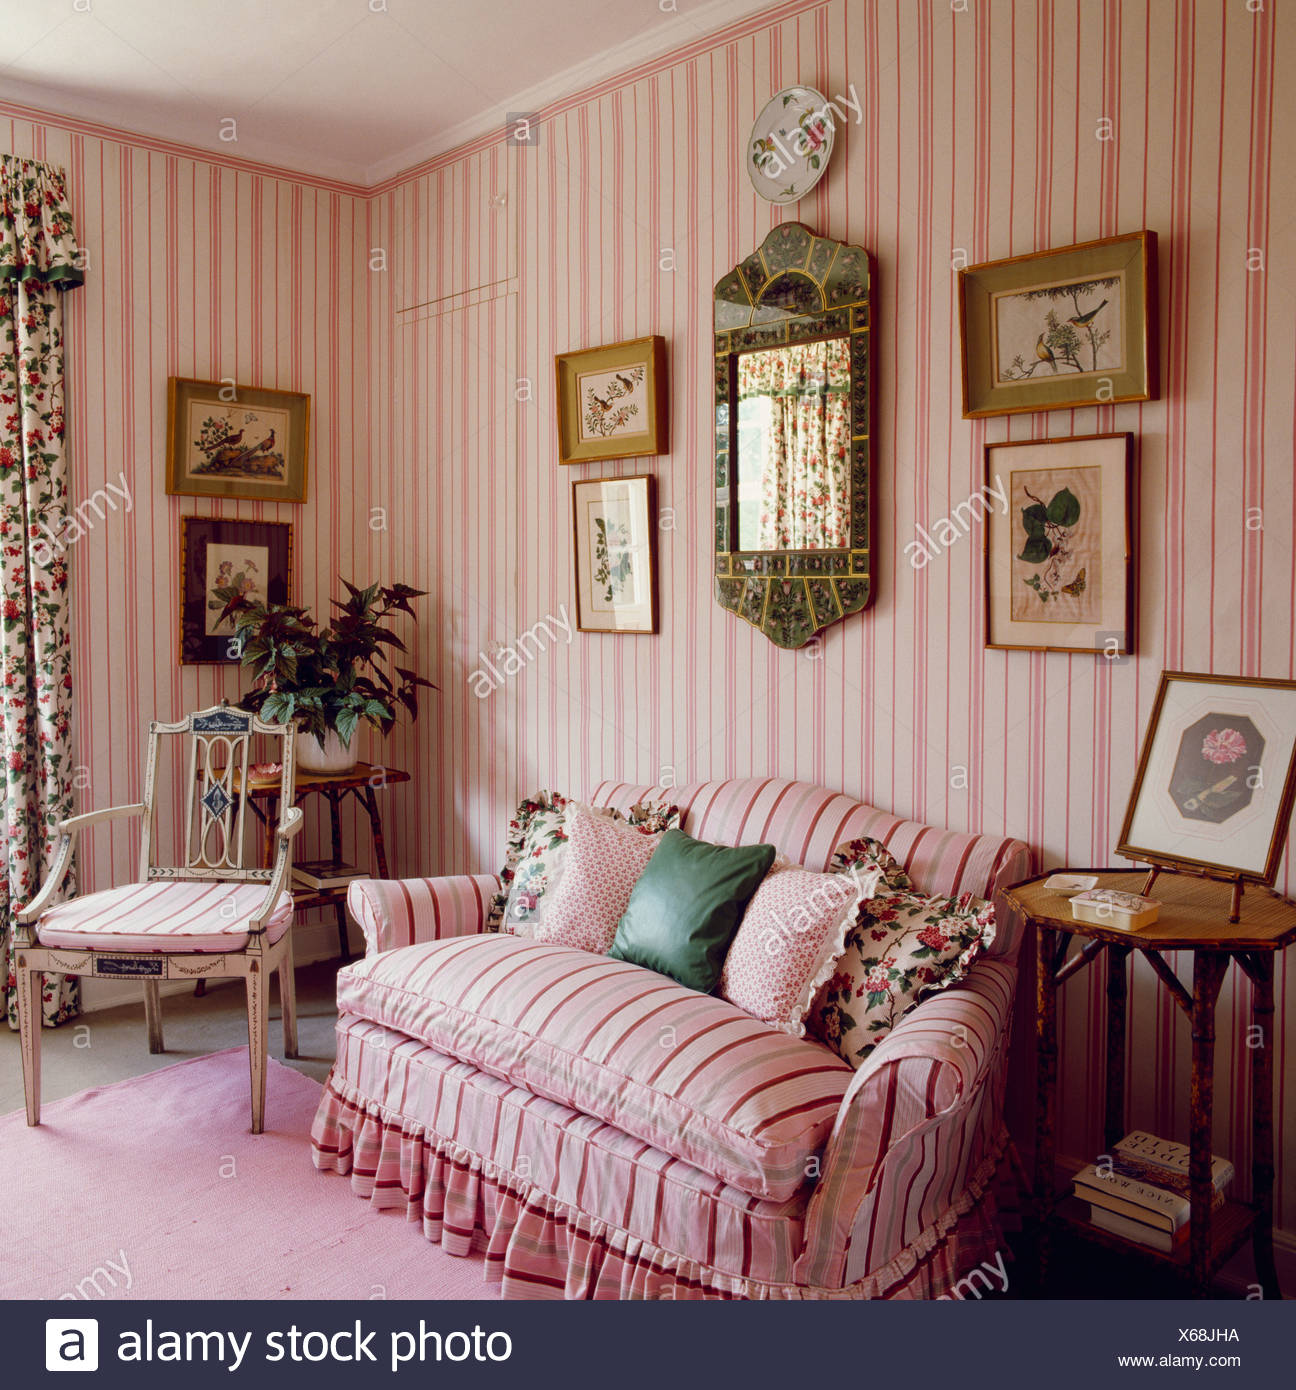 striped sofas living room furniture. Pink Striped Sofa In Country Living Room With Wallpaper - Stock Image Sofas Furniture M